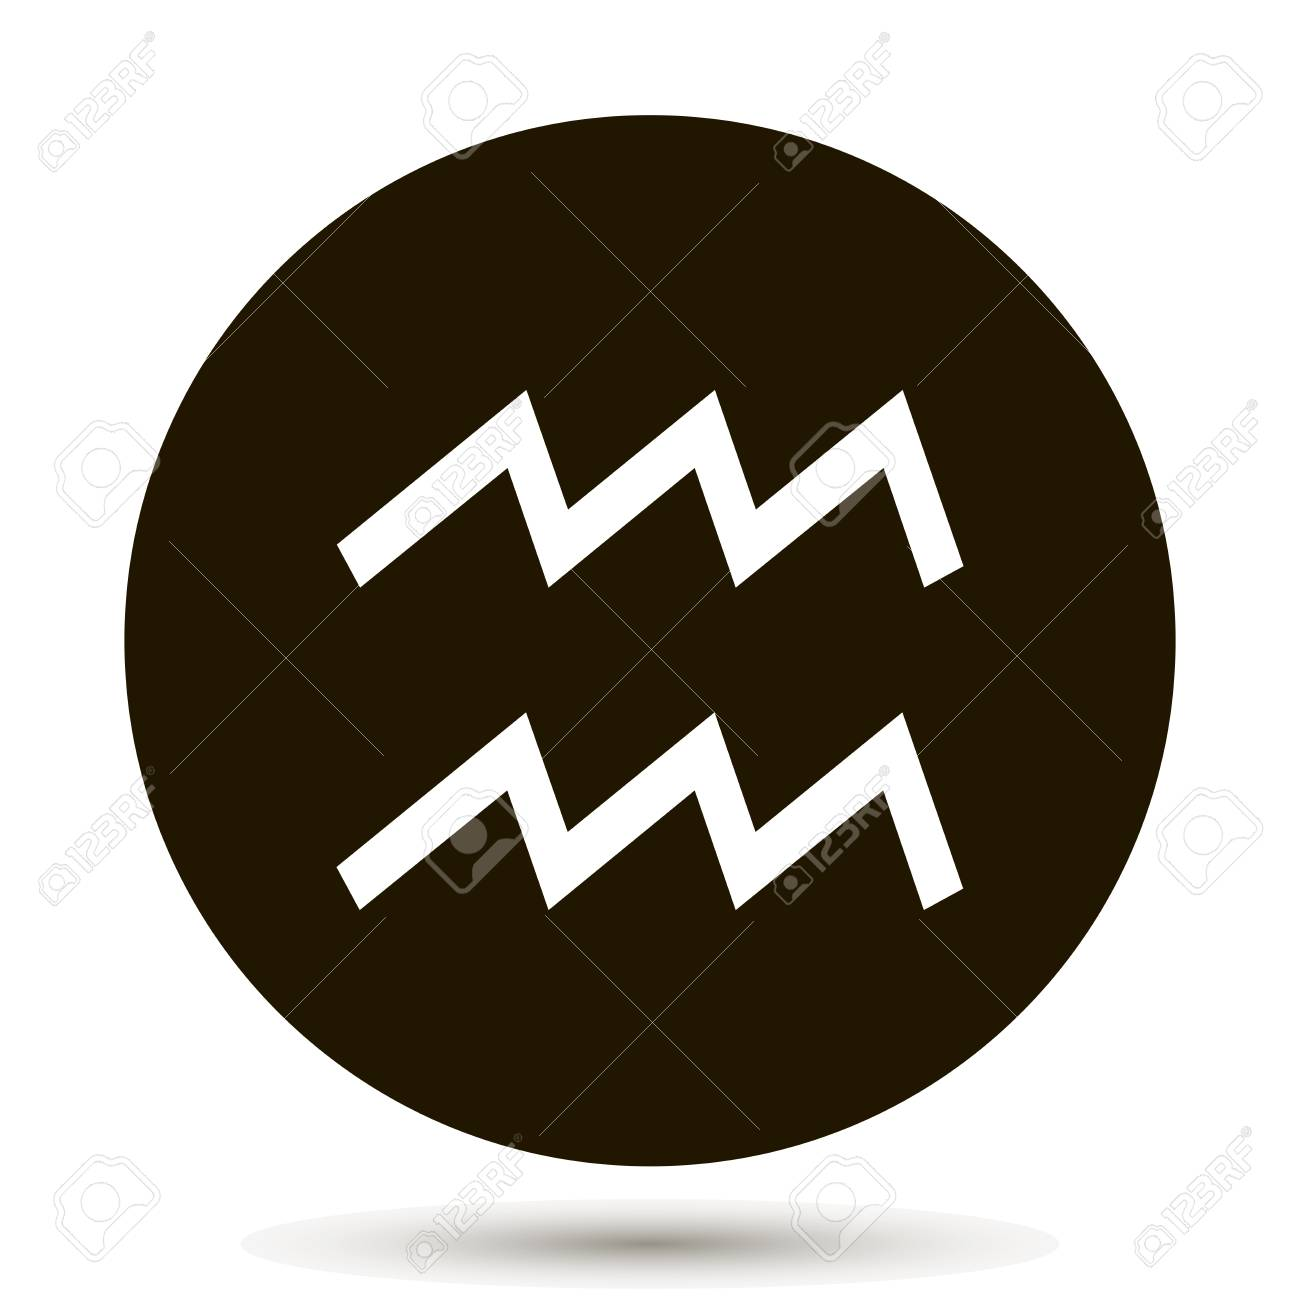 aquarius zodiac sign astrological symbol icon in circle on